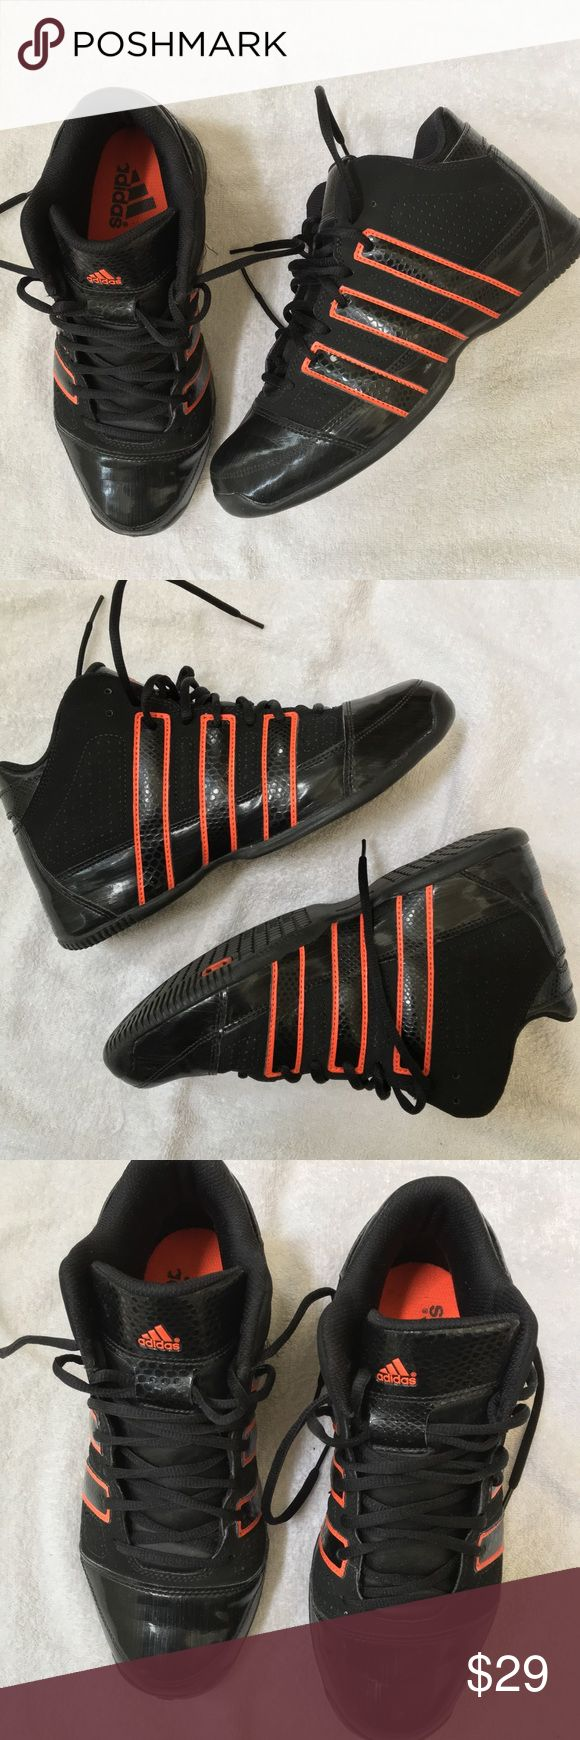 Adidas Basketball shoes Excellent condition. 7 Men's / 9 Women's. Mid, not high top. Black and Hyper Orange (dark orange, almost red). Pictures in natural sunlight to show fabric, patent leather and color. Feel free to offer. Adidas Shoes Athletic Shoes